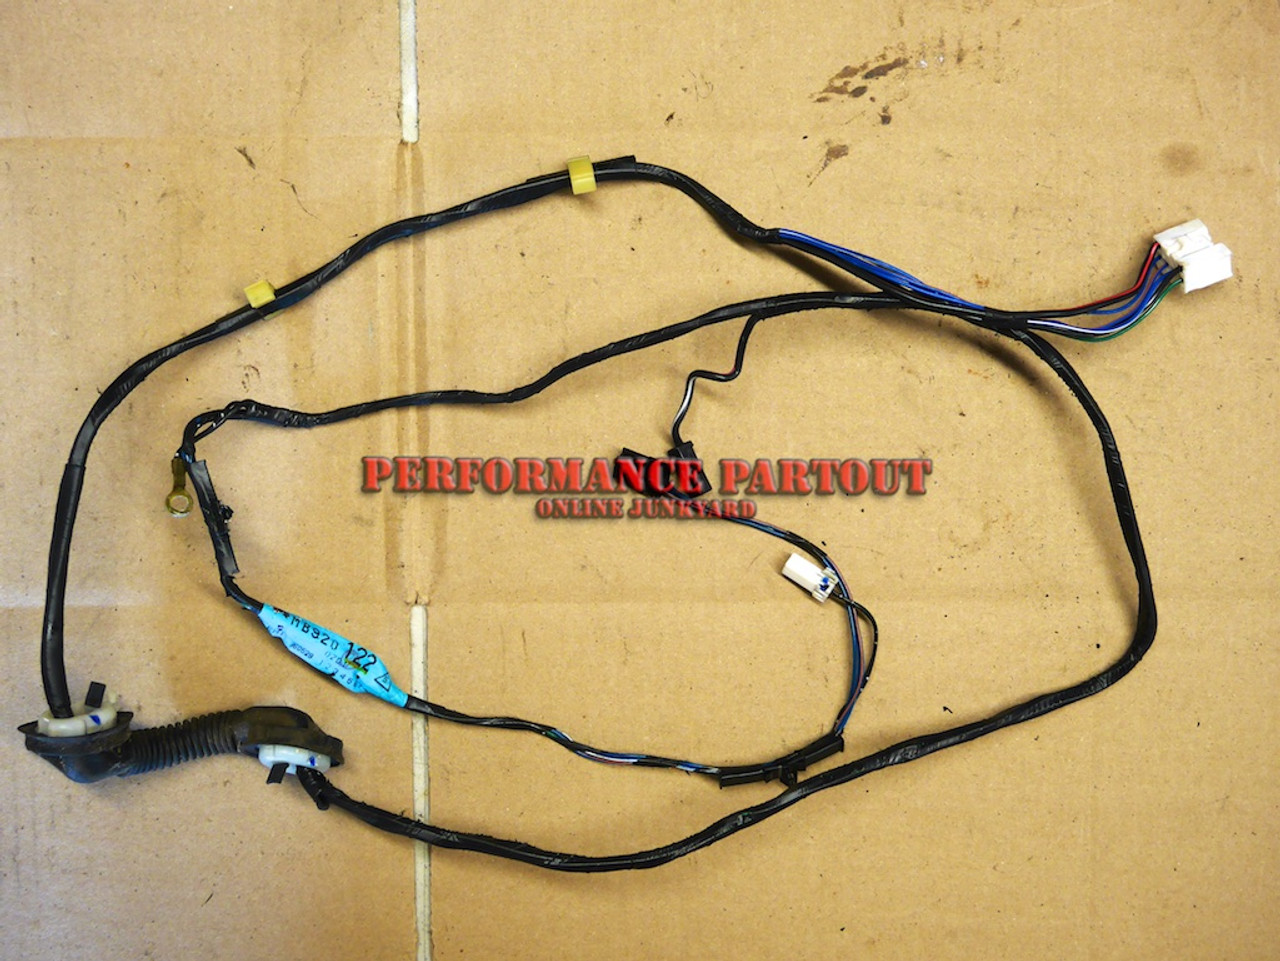 small resolution of hatch wiring harness 2g dsm performance partout 2008 subaru outback hatch wiring harness hatch wiring harness